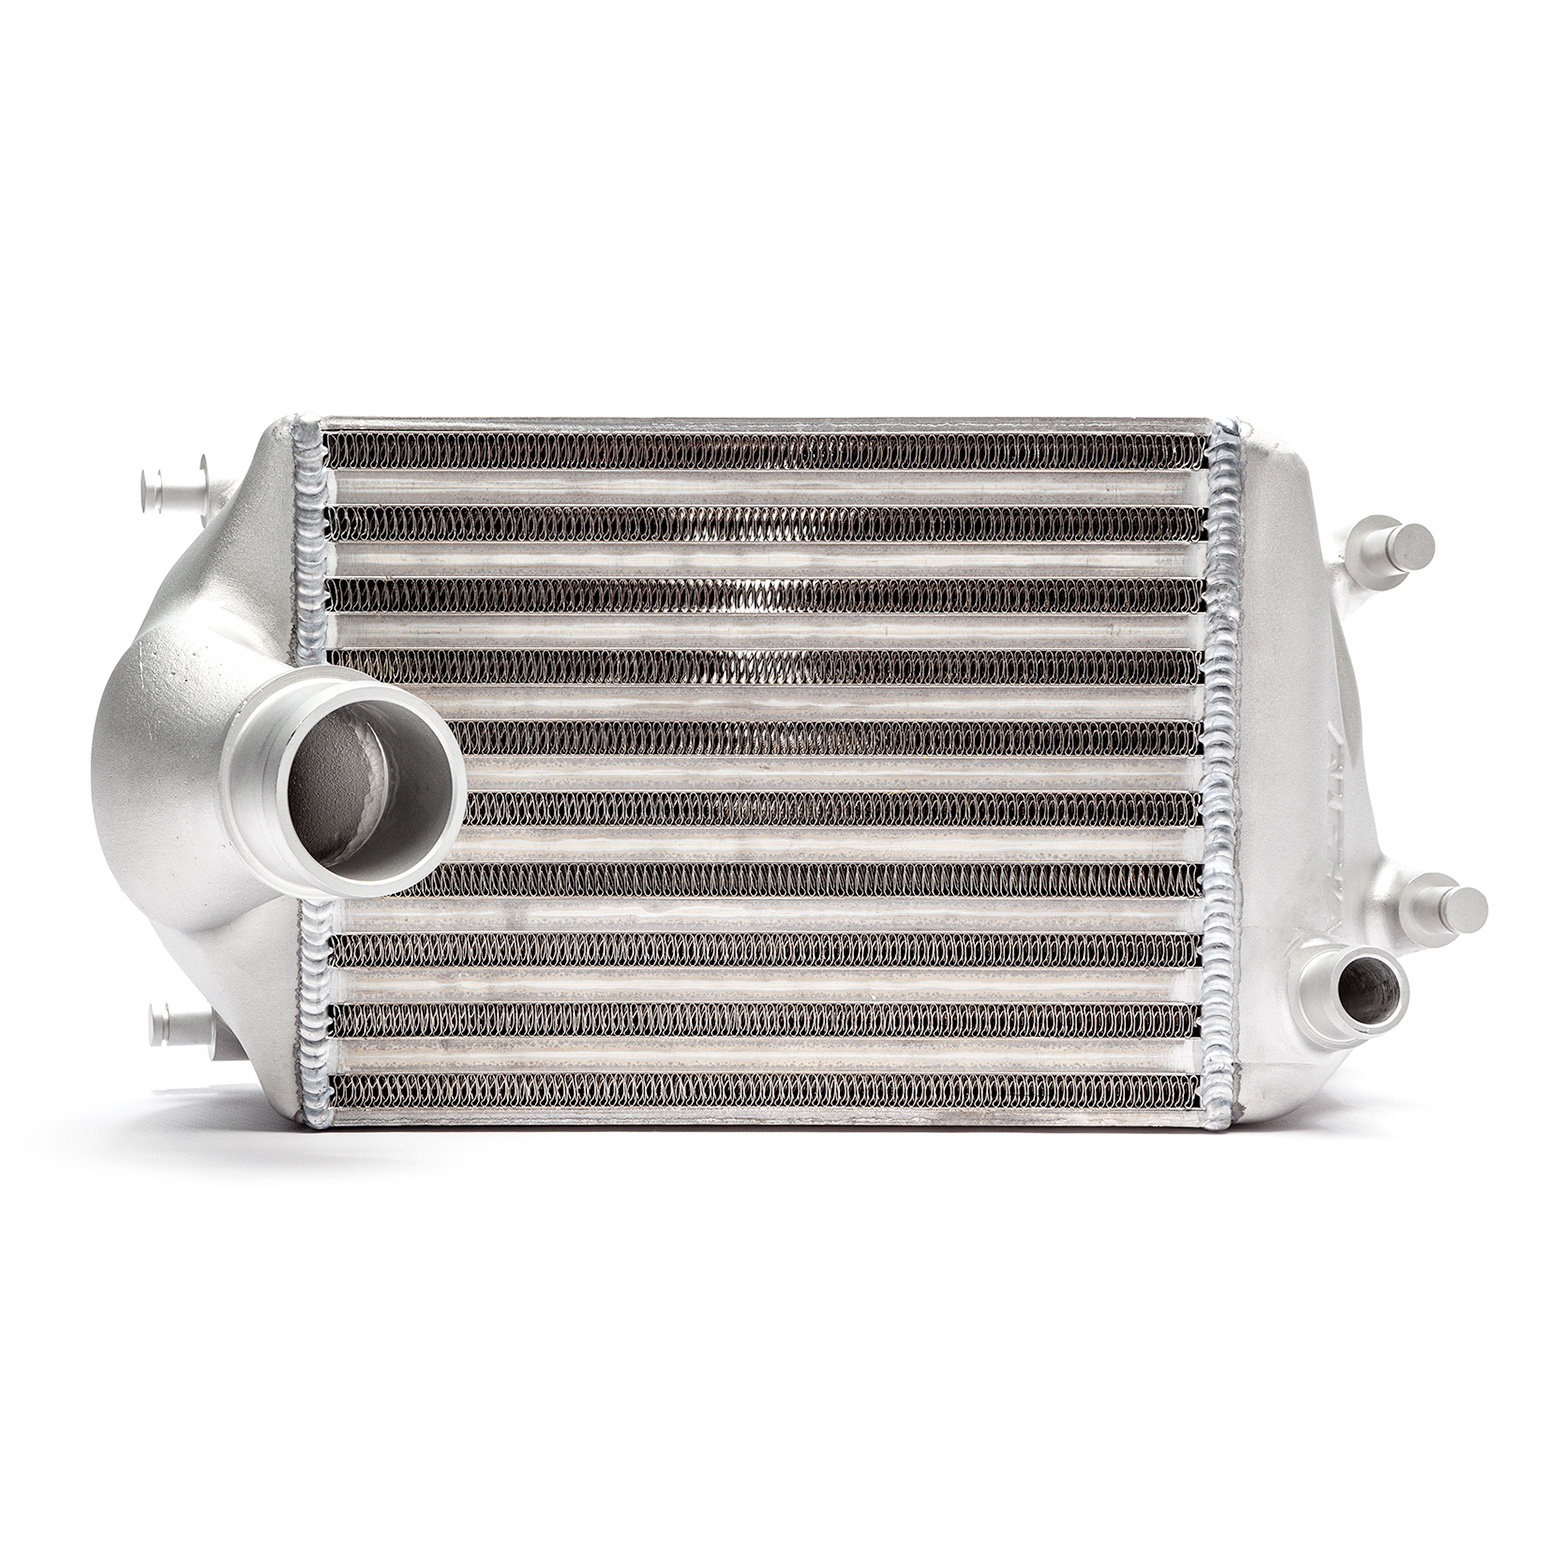 Alpha Performance Intercooler System for Porsche 991.2 Carrera, S, GTS 2017-2018